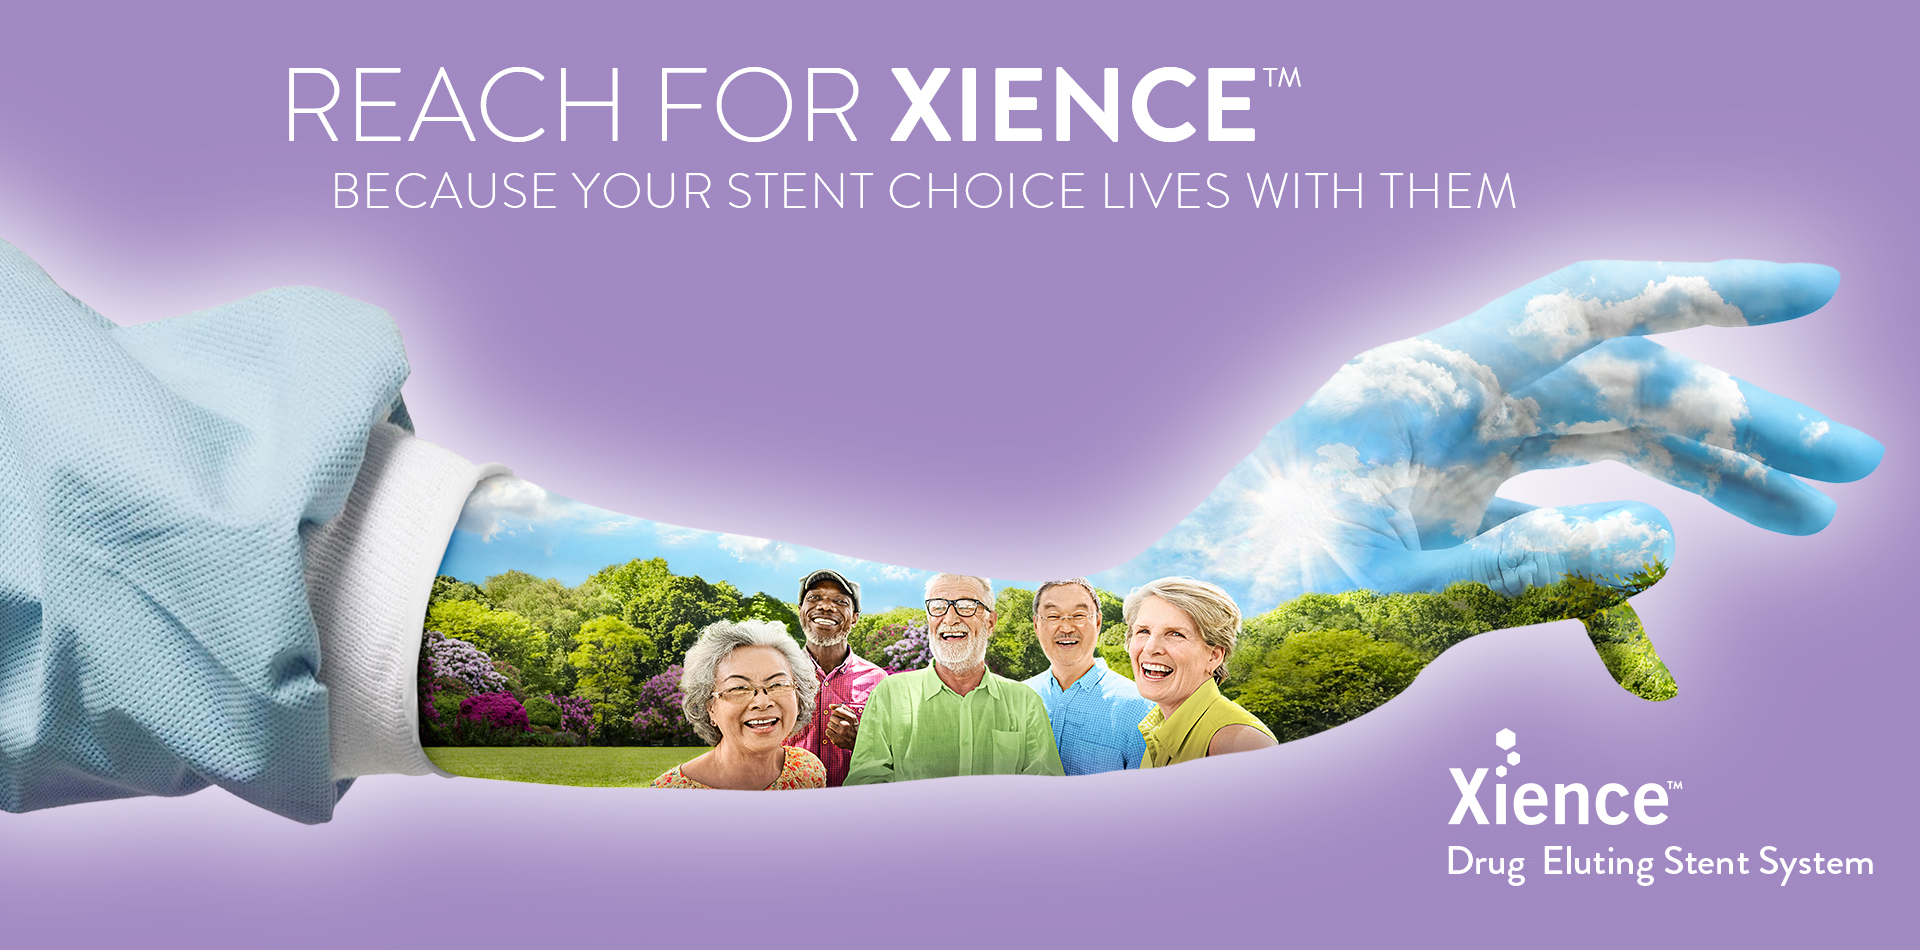 Reach for Xience